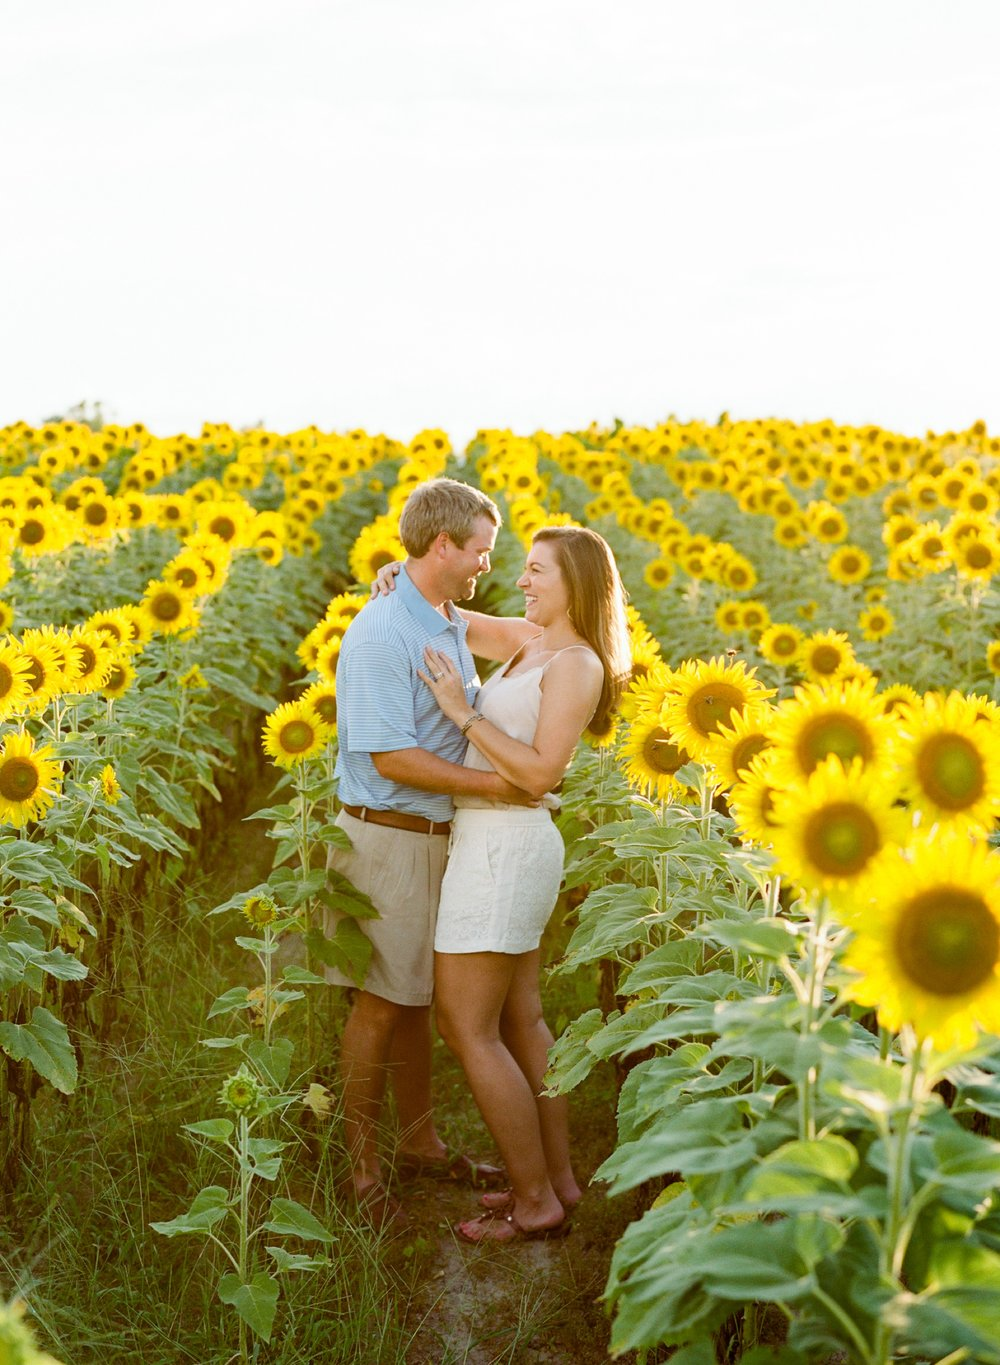 Jessie Barksdale - Sunflower Field Couple Session